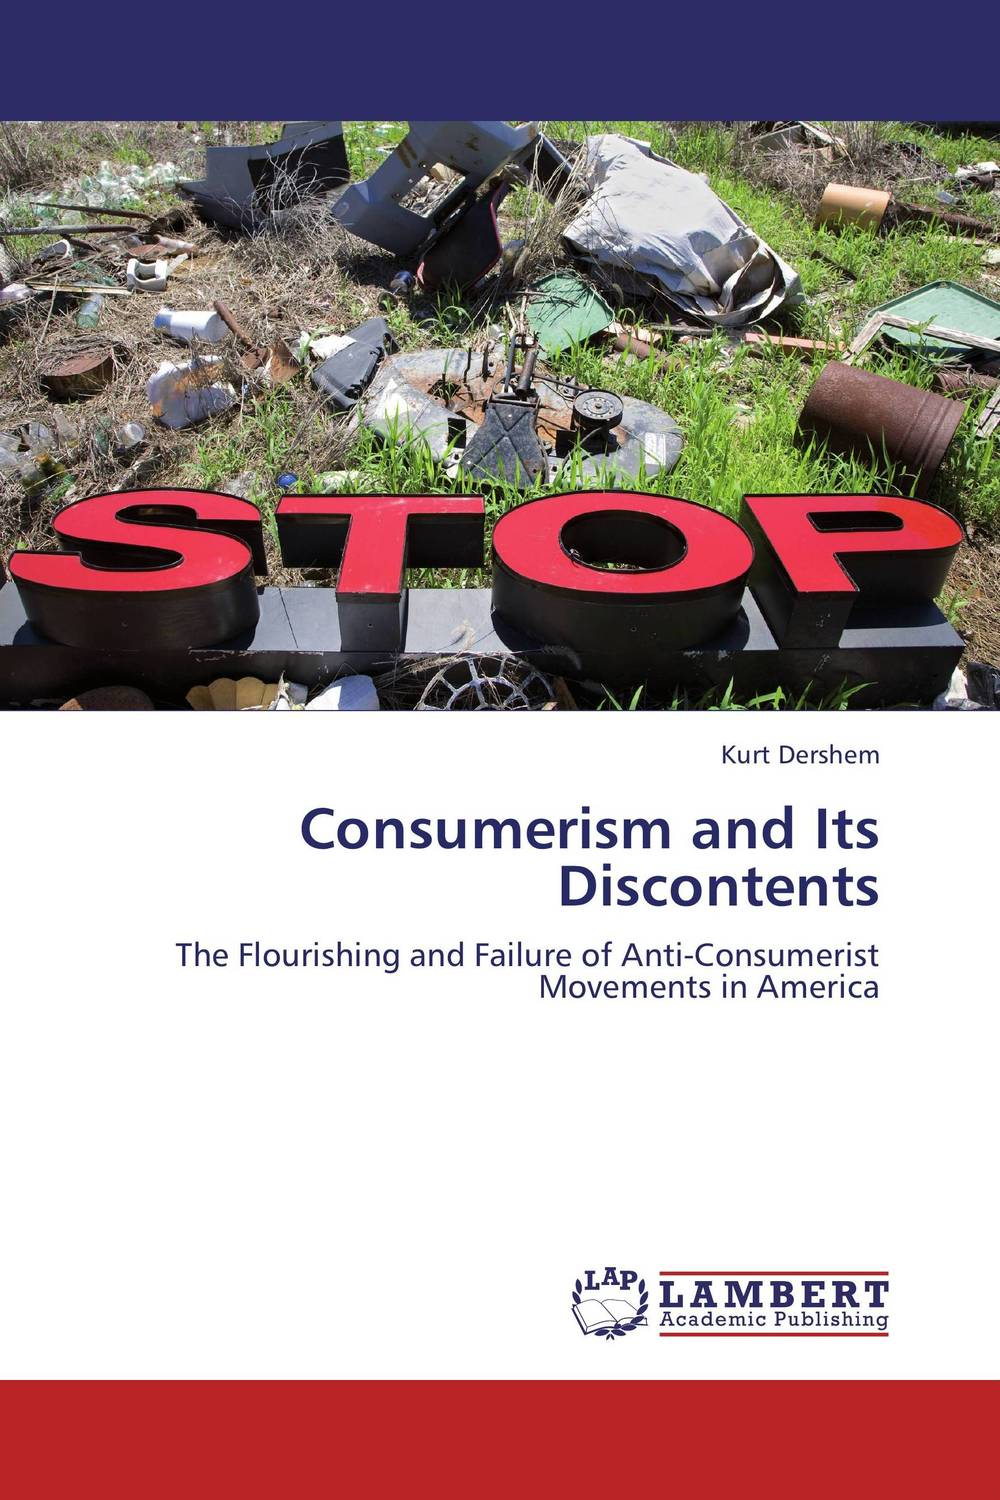 Consumerism and Its Discontents voluntary associations in tsarist russia – science patriotism and civil society